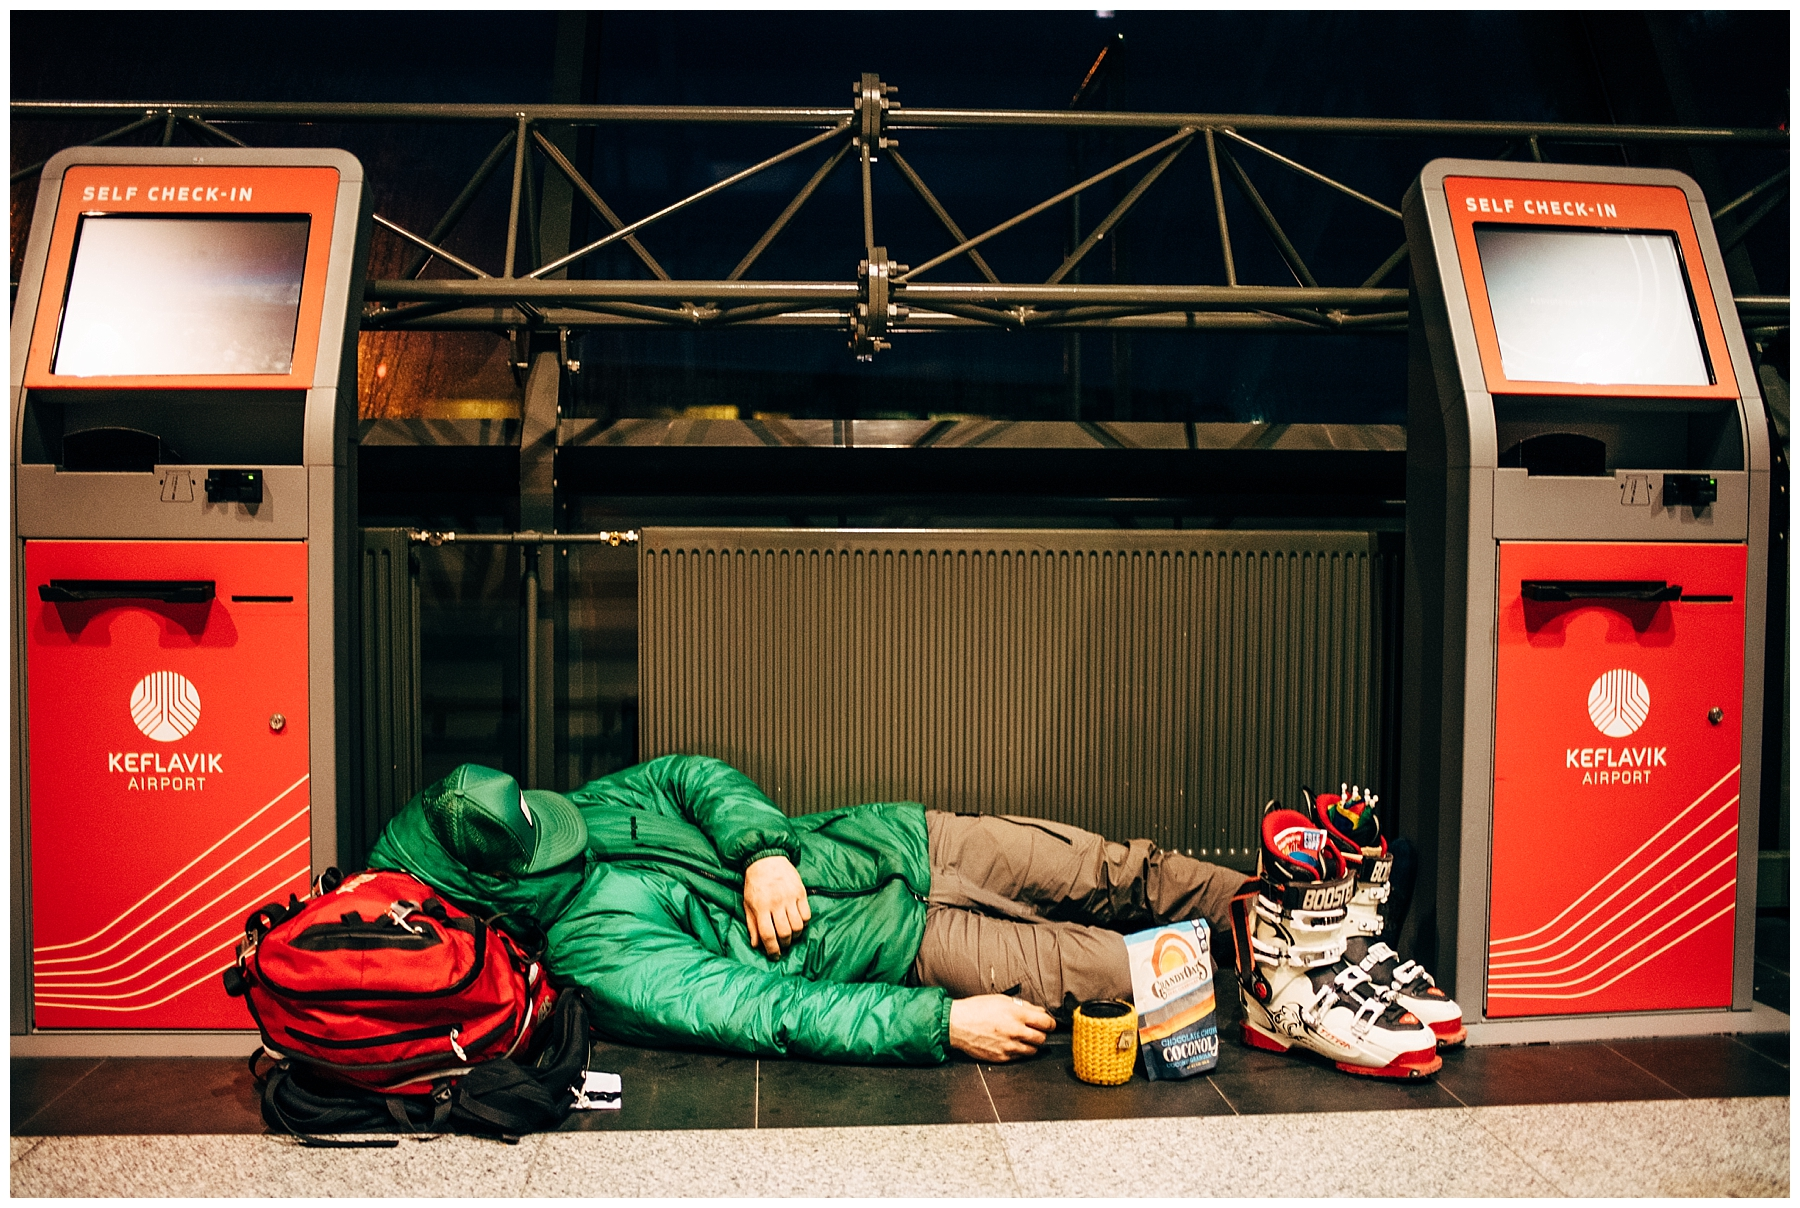 We found Erik like this in the Reykjavik airport after spending 24 hours waiting for his lost ski bag. It didn't arrive, and neither did ours.